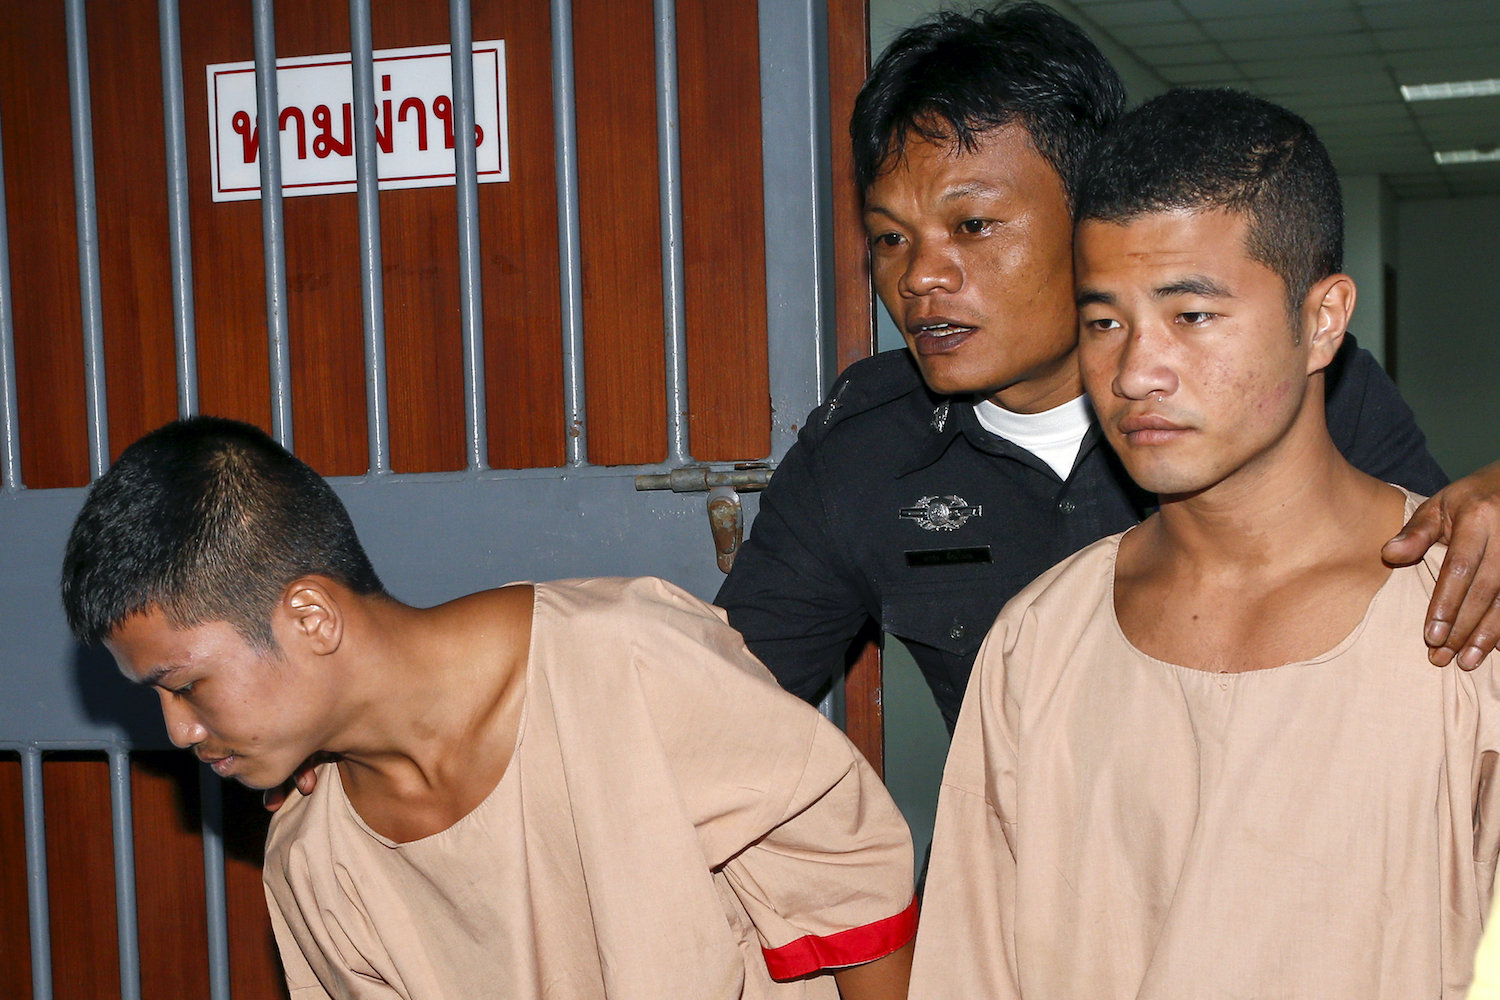 Migrant workers Zaw Lin and Win Zaw Htun leave the Koh Samui provincial court in Koh Samui after being found guilty of murder on Dec 24, 2015. (Reuters File Photo)